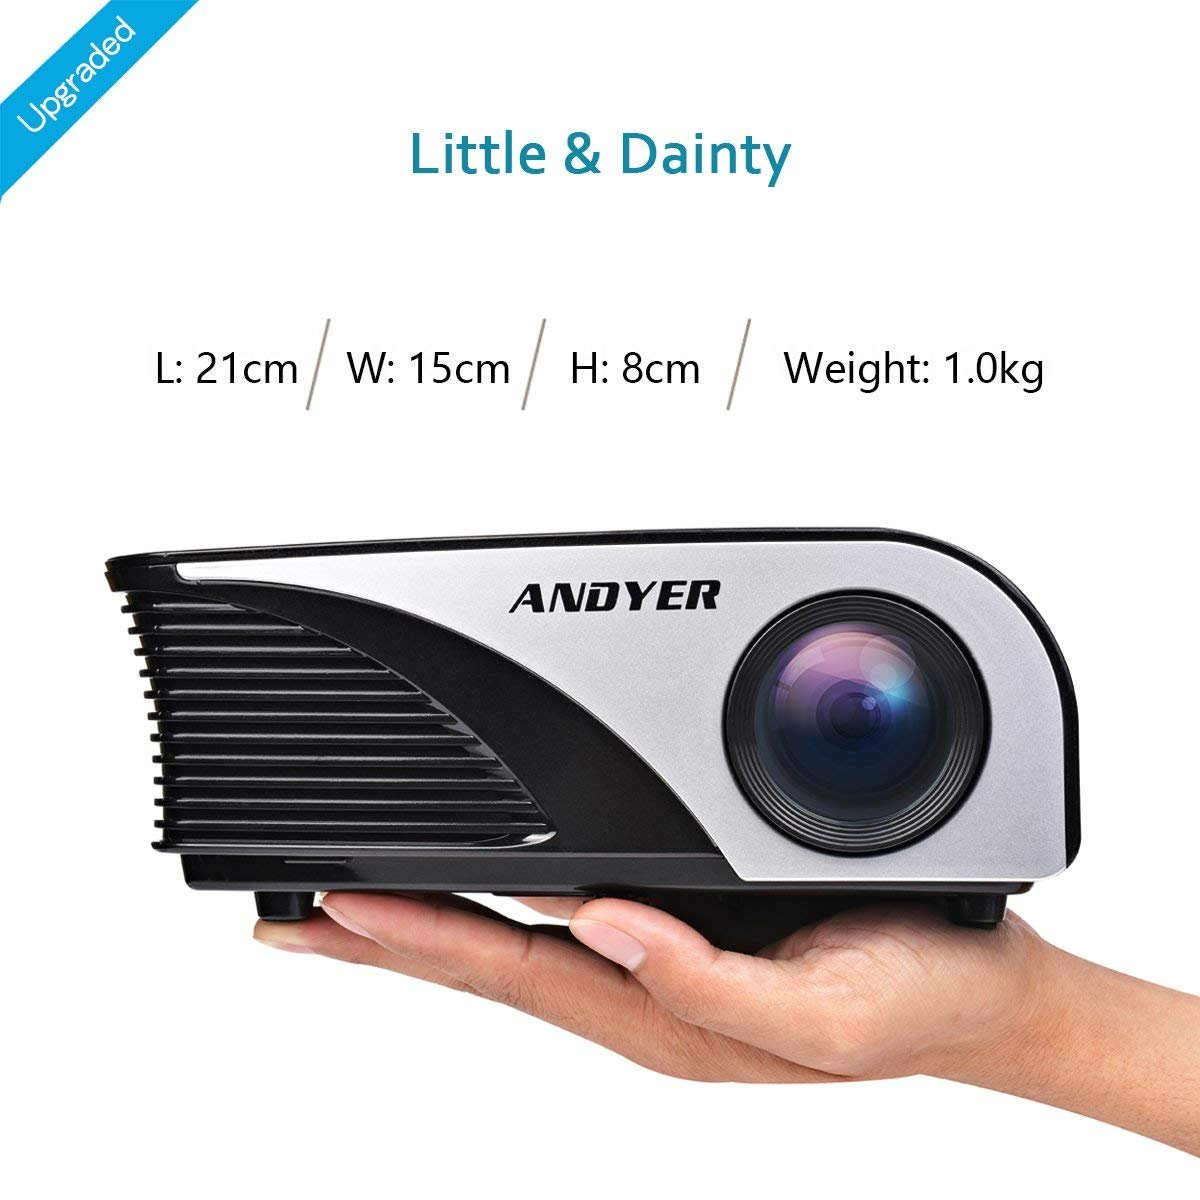 Andyer 805B-Plus Portable Projector LED Mini Projector Support HD 1080P 1500 Luminous Efficiency 150'' for Movie Night/Game,Support Blu-ray DVD player,Laptops,Tablets,Smartphones by Andyer